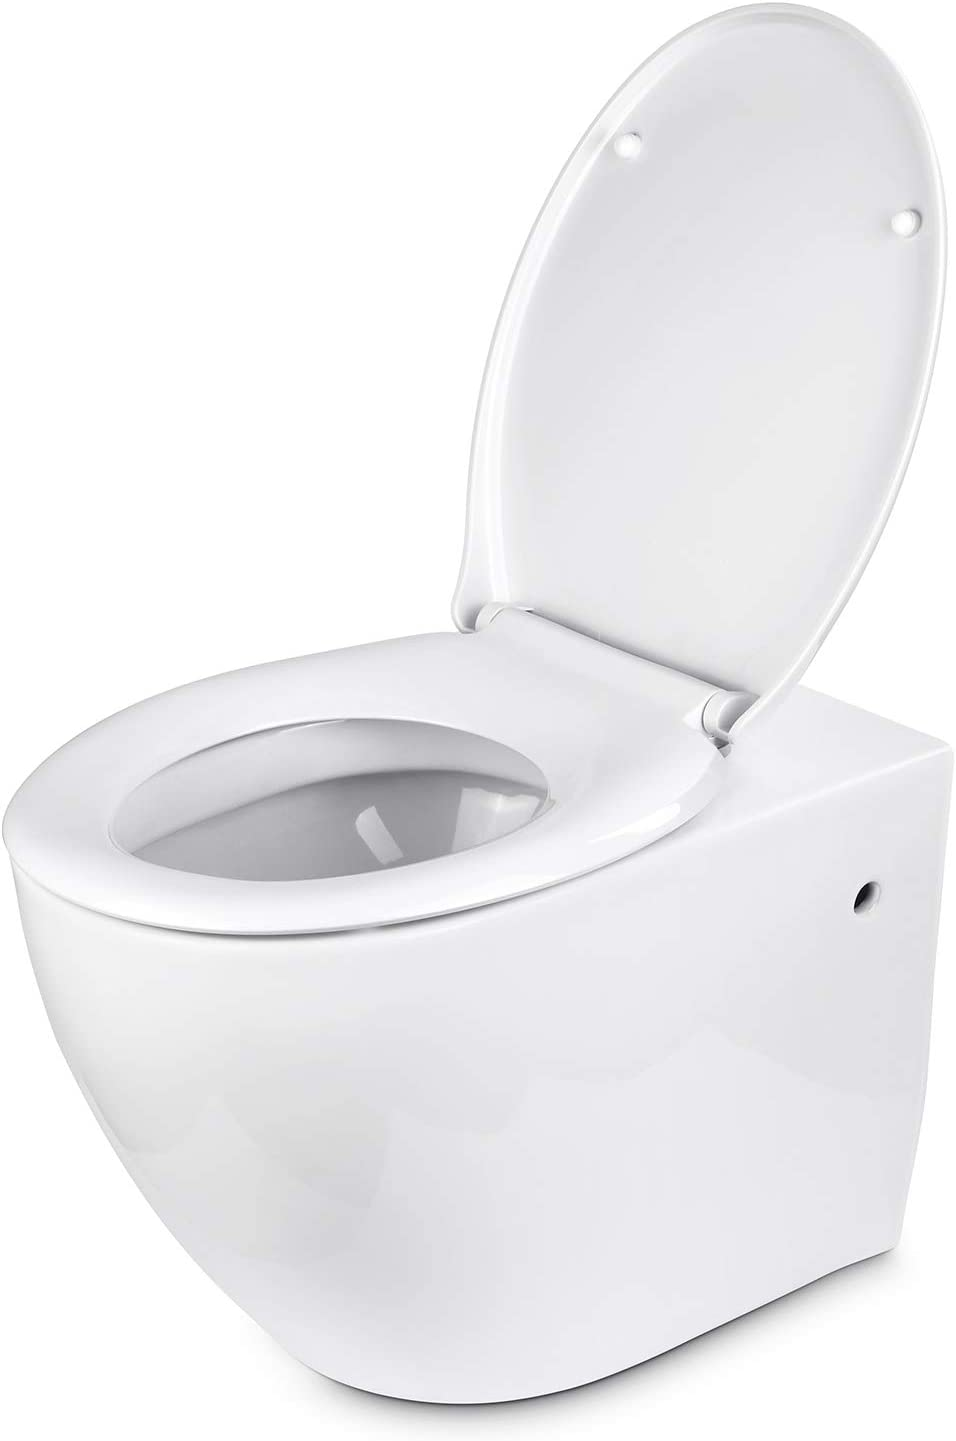 WC Sitz aus Polypropylene // Wei/ß Klodeckel mit Soft-Close Funktion Toilettendeckel mit Absenkautomatik Amzdeal Toilettensitz O-Form